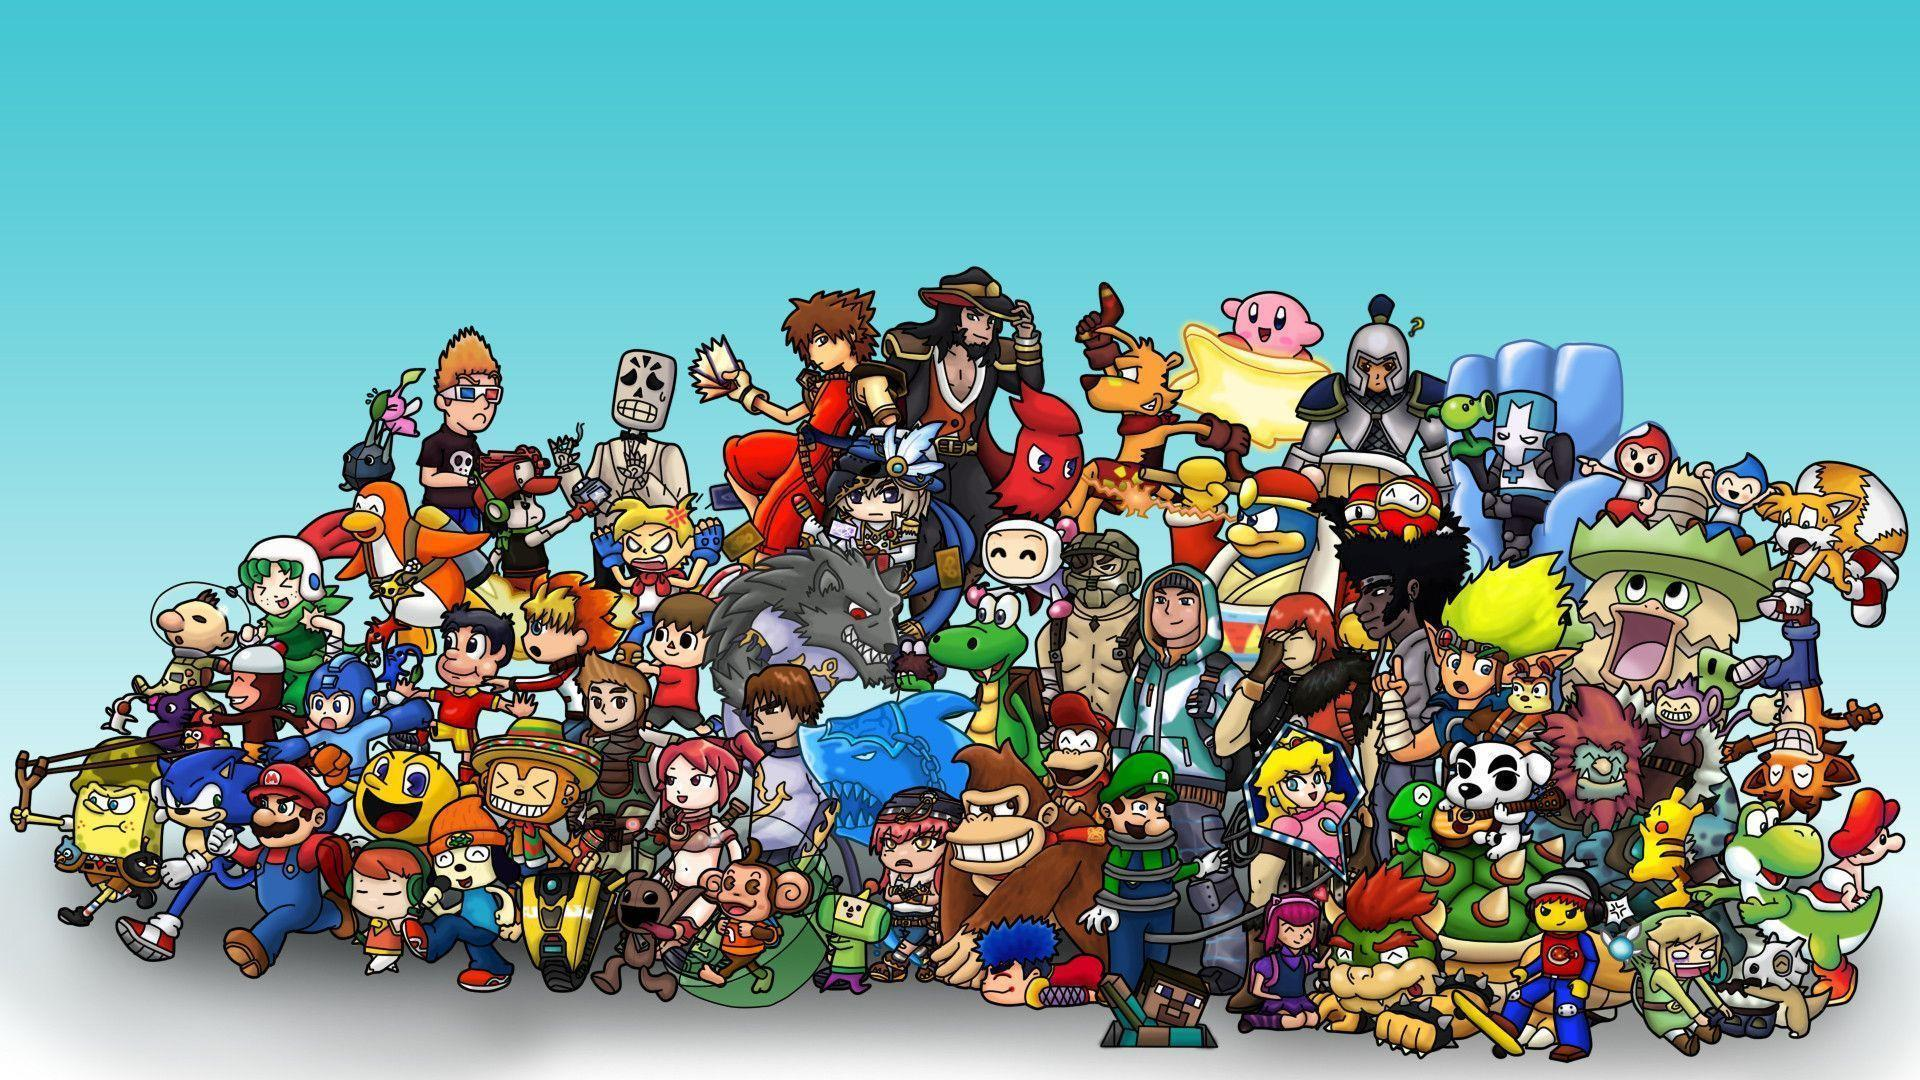 Character Design Wallpaper : Video games wallpapers wallpaper cave